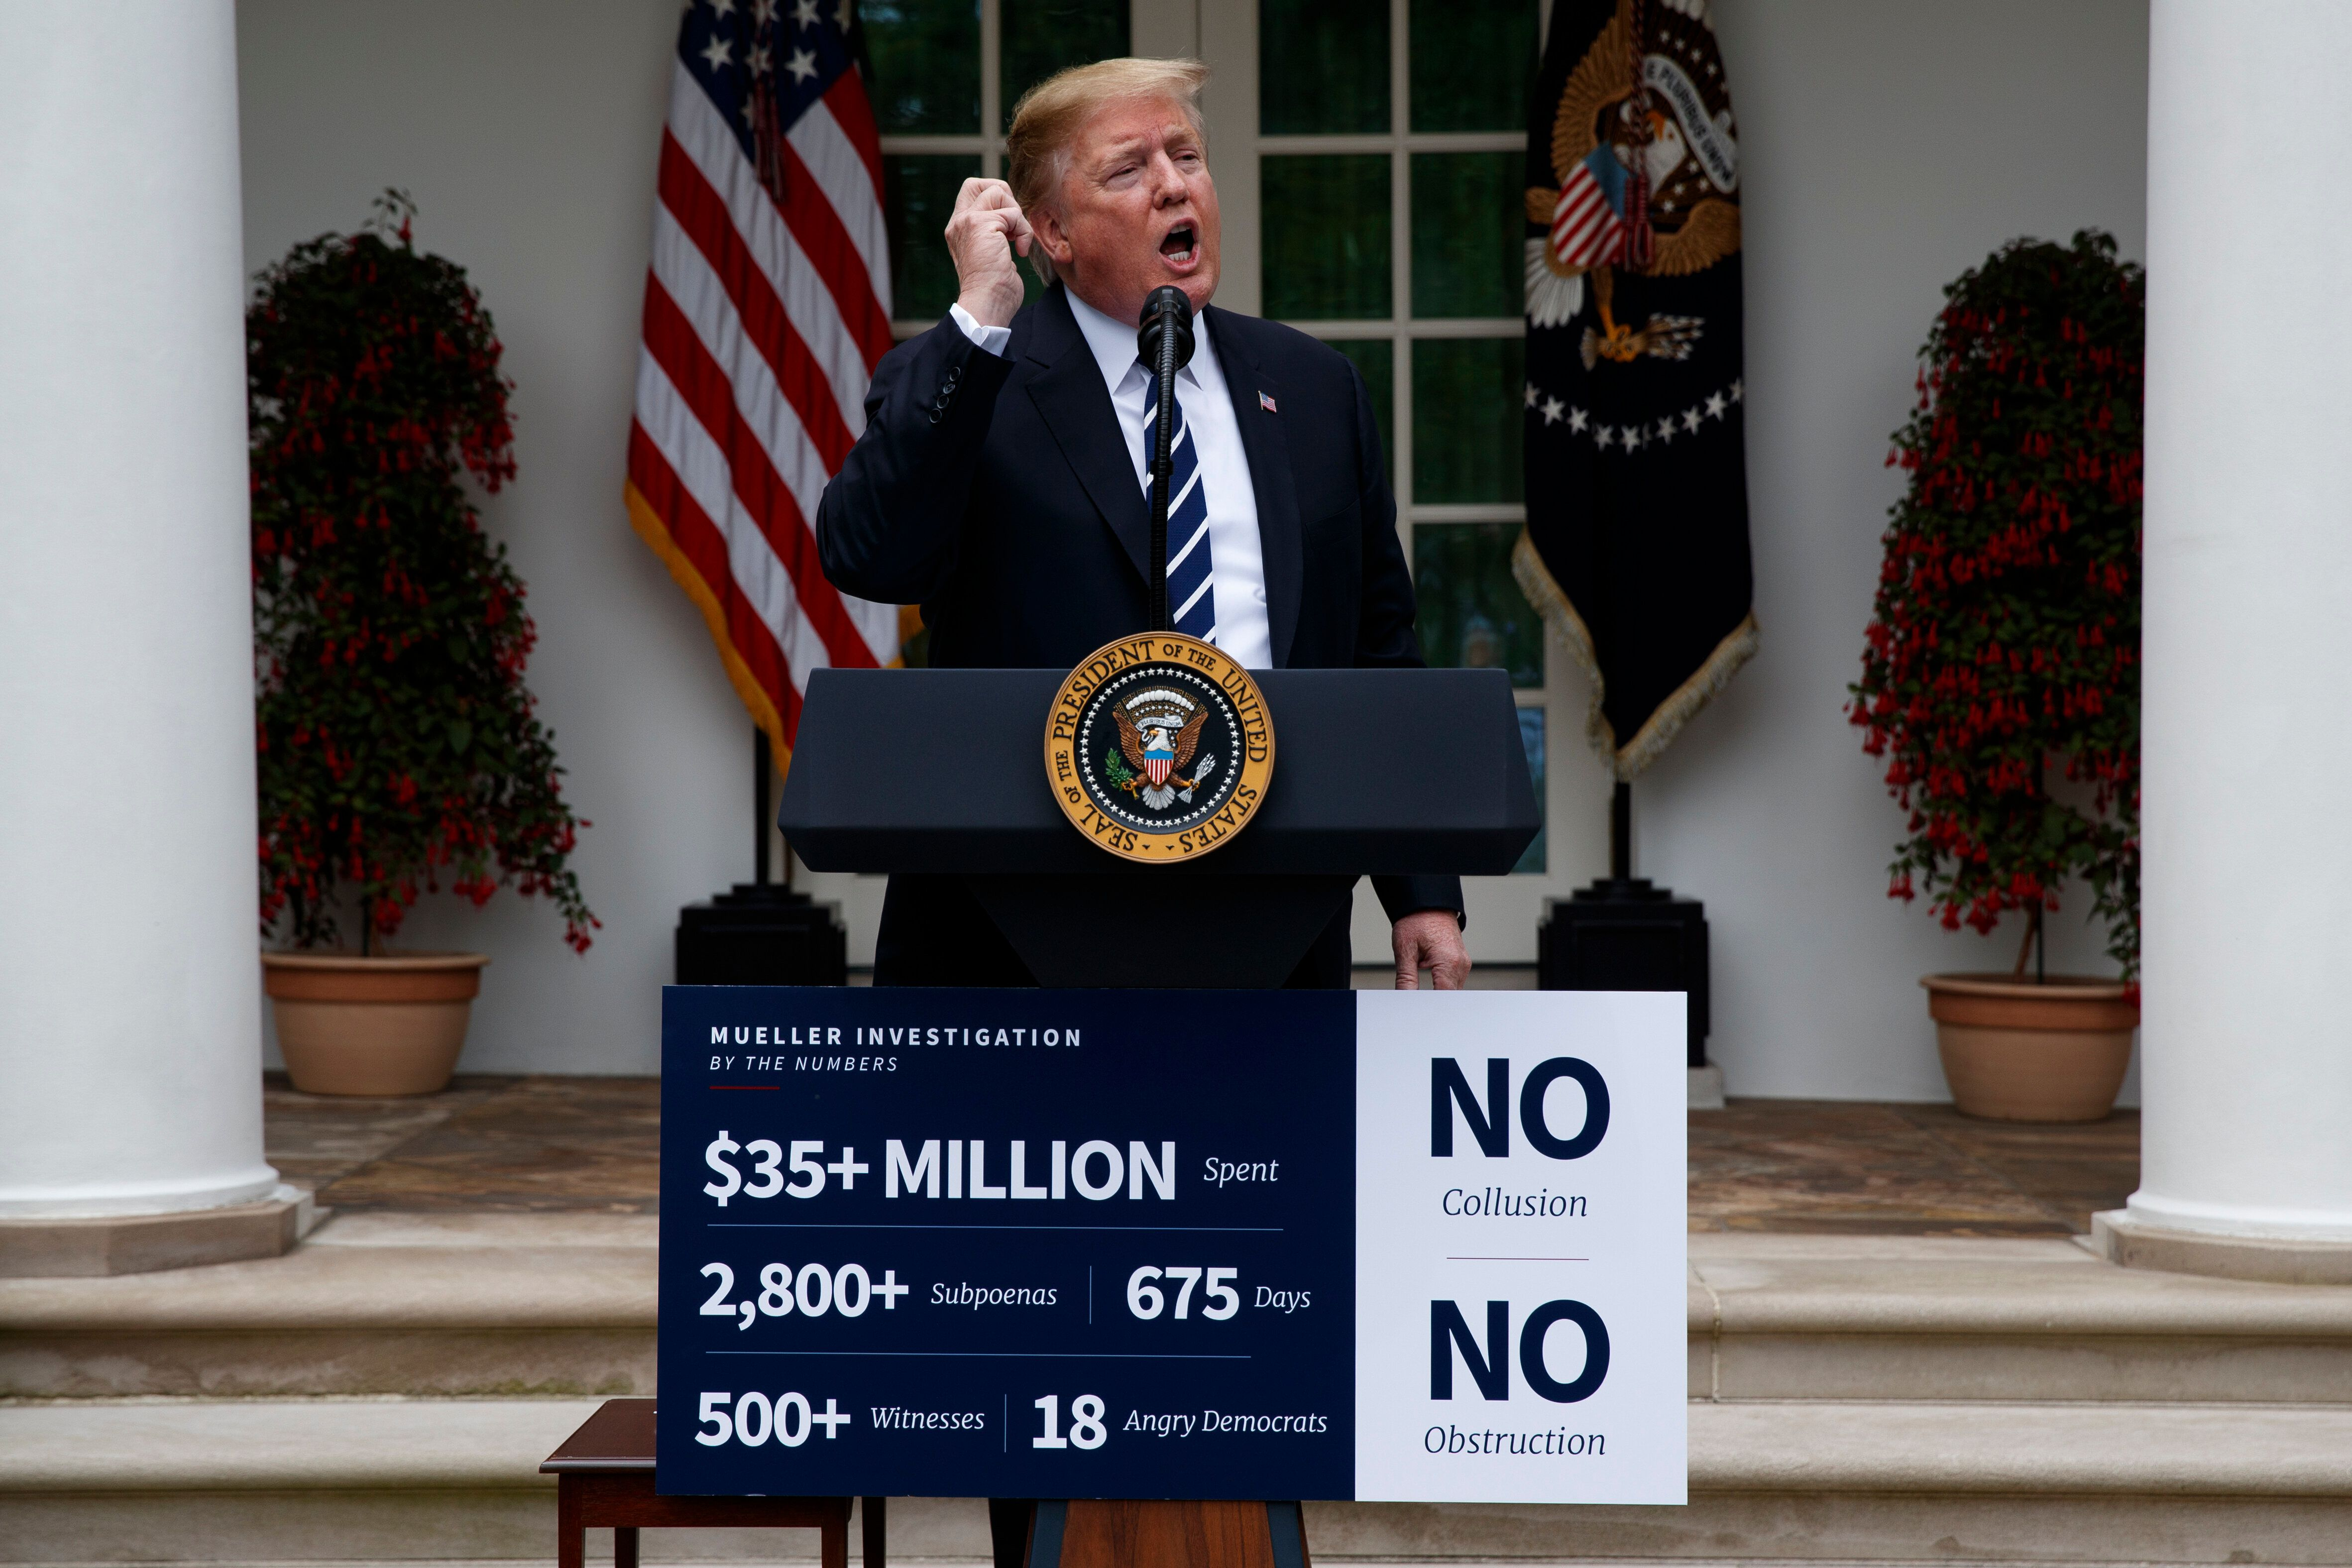 President Donald Trump delivers a statement in the Rose Garden of the White House, Wednesday, May 22, 2019, in Washington. (AP Photo/Evan Vucci)